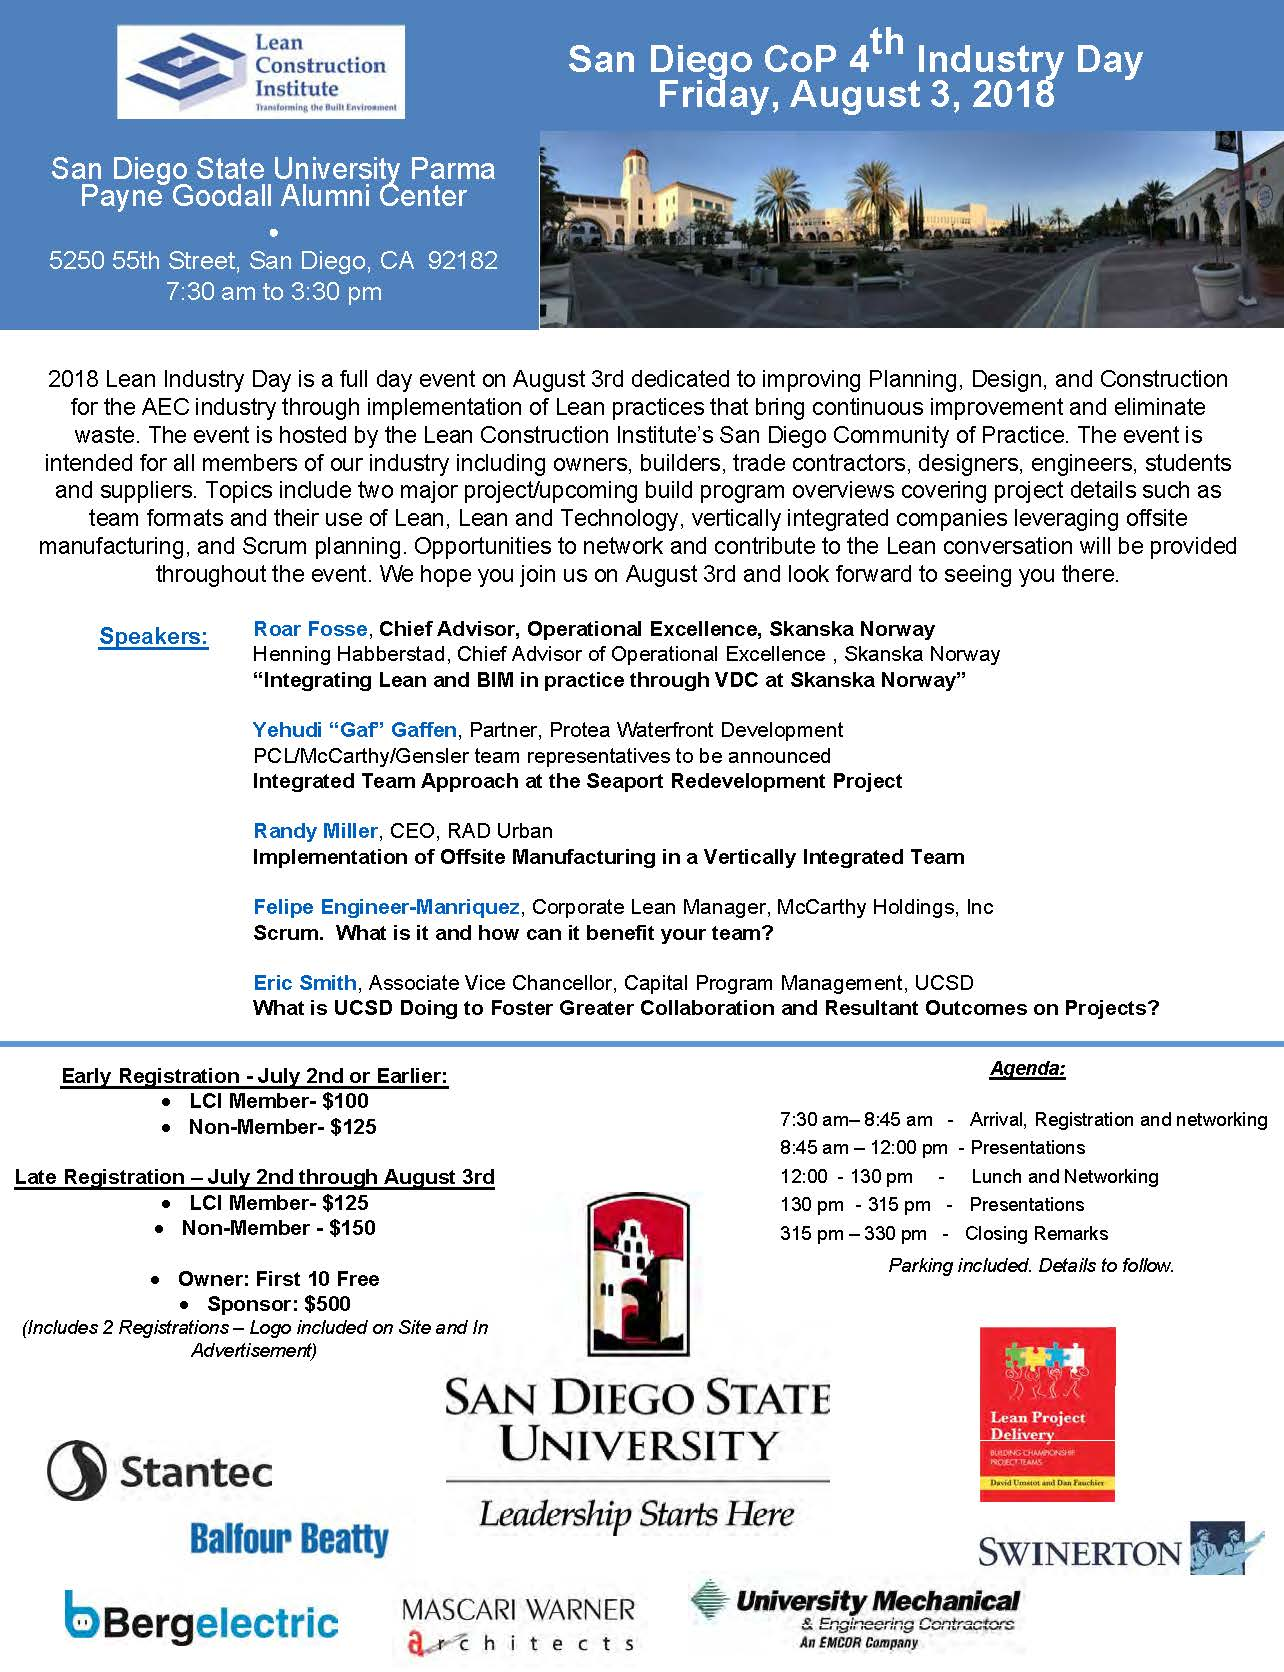 4th Industry Day (San Diego CoP) @ San Diego State University Parma Payne Goodall Alumni Center | San Diego | California | United States